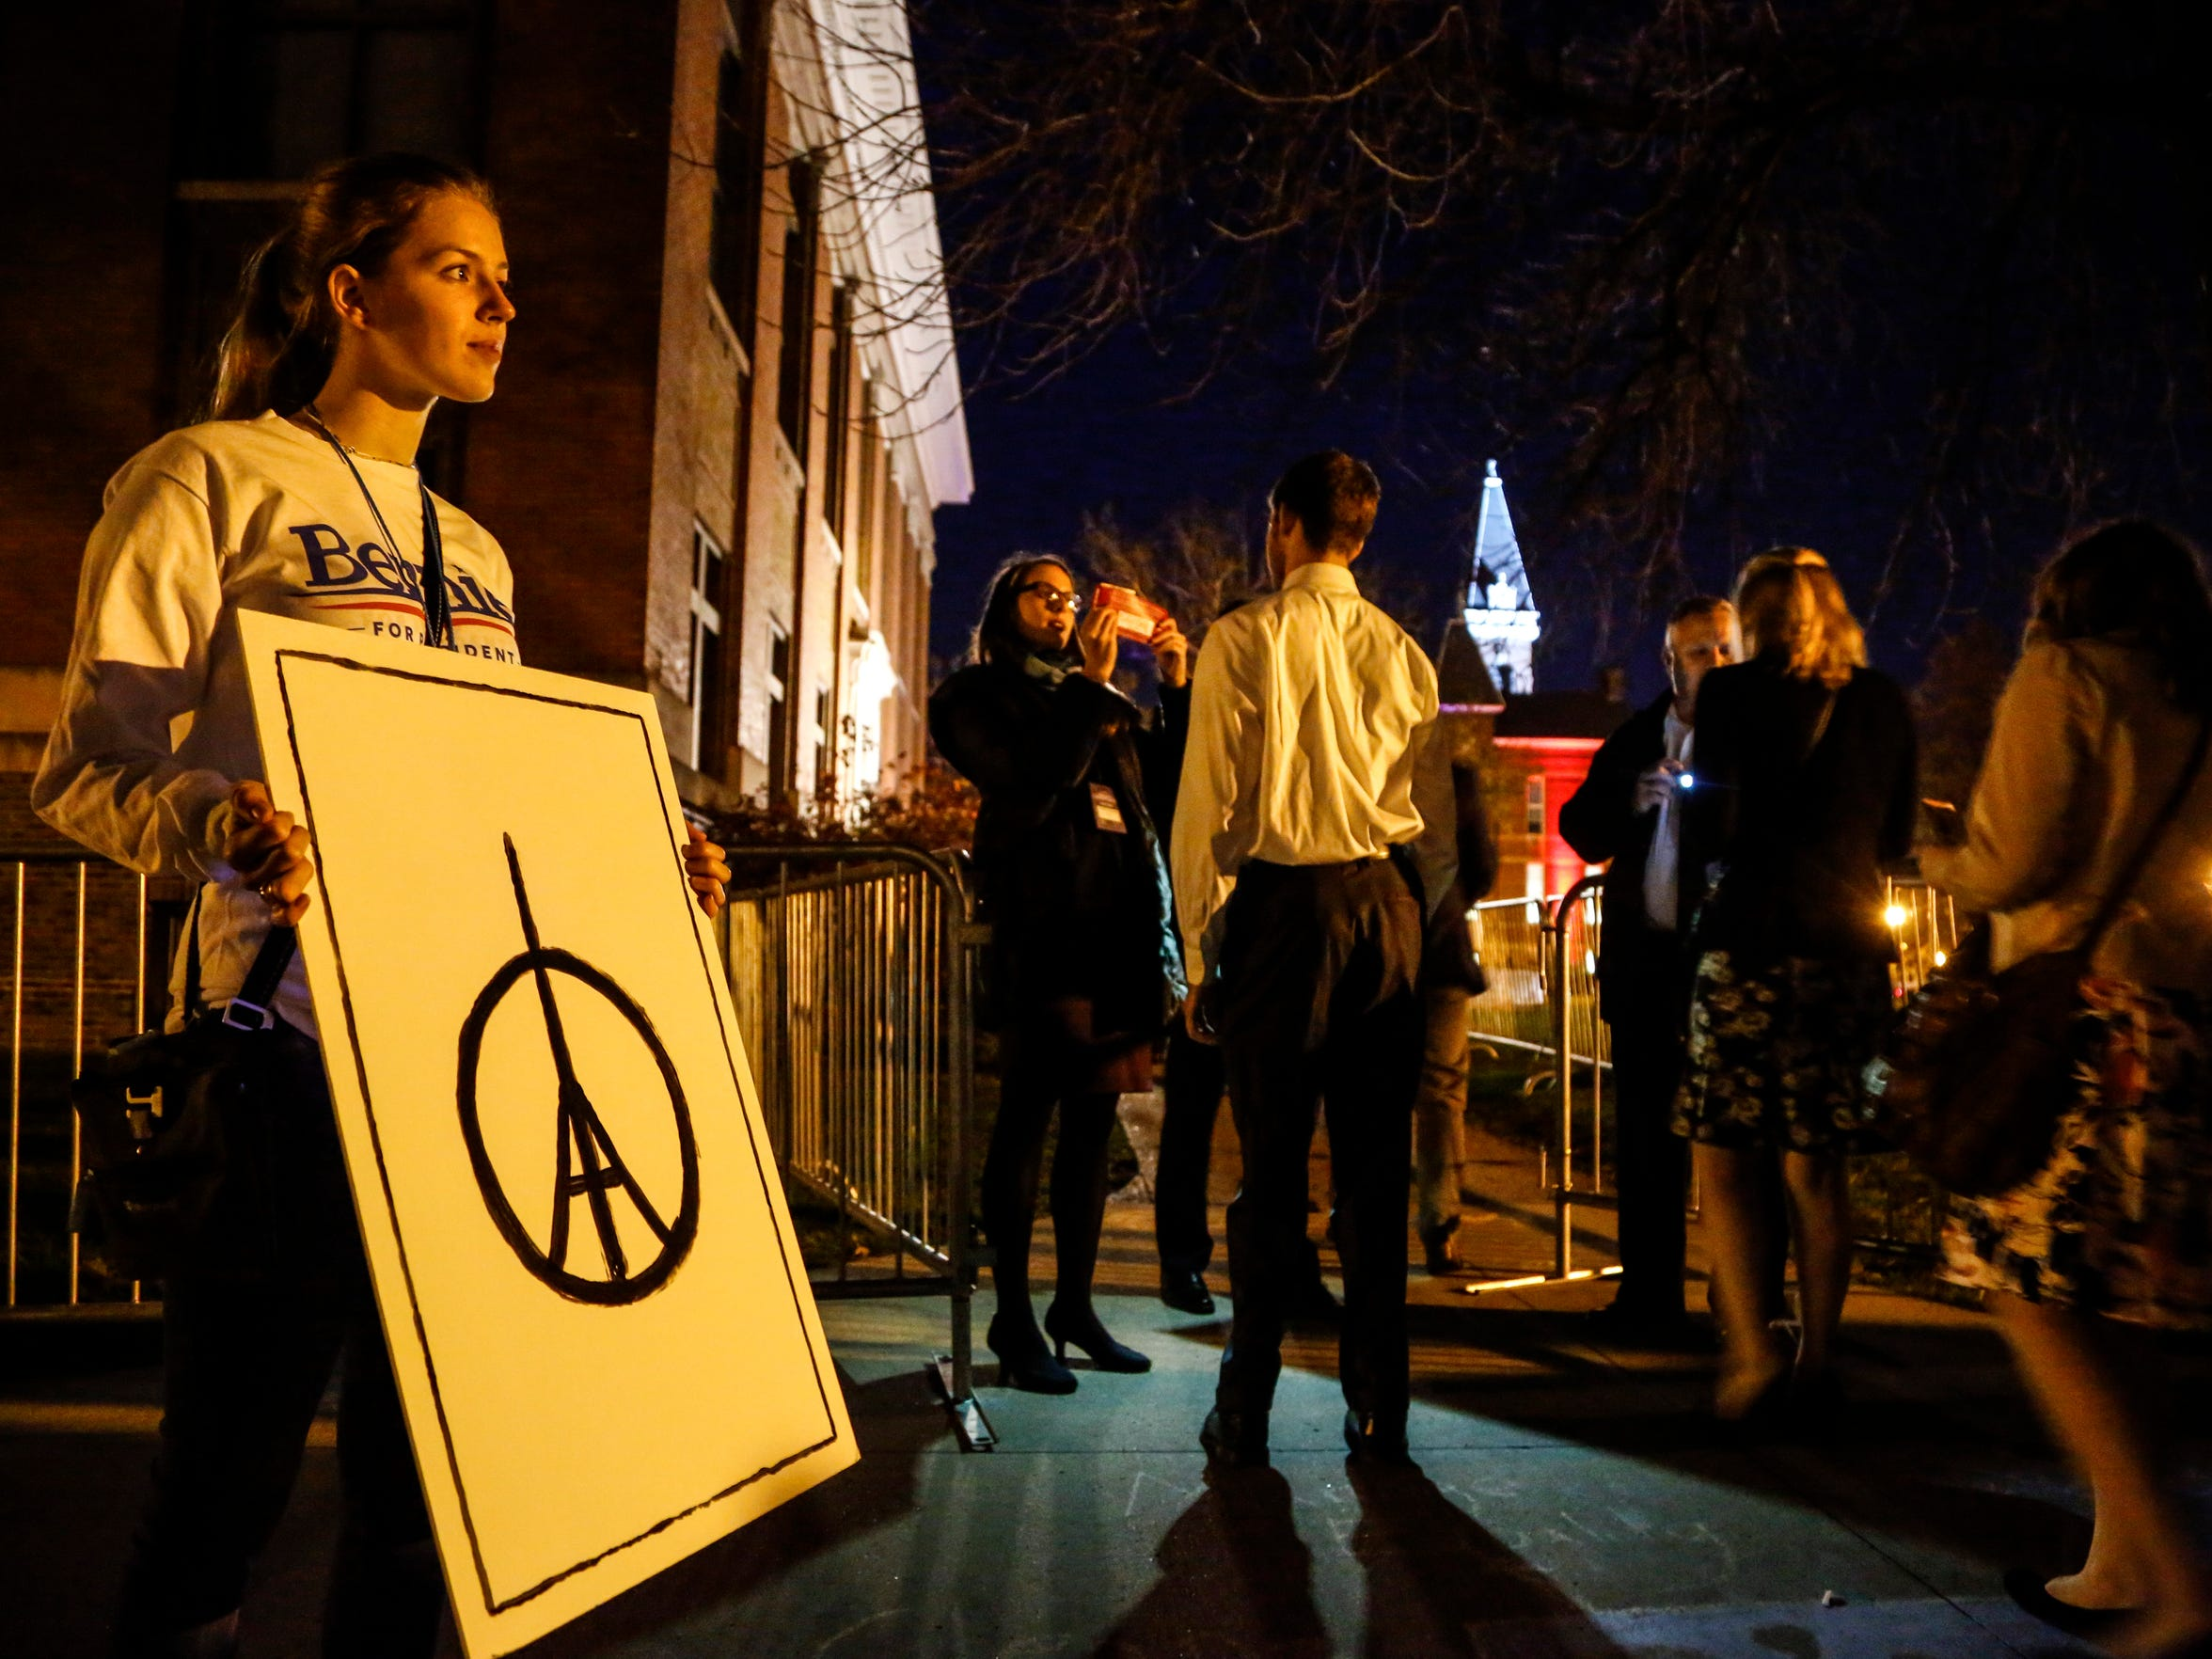 Paige McKibben of Des Moines holds a sign sending condolences to the people of Paris on the sidewalk outside Drake University before the debate Saturday, Nov. 14, 2015.